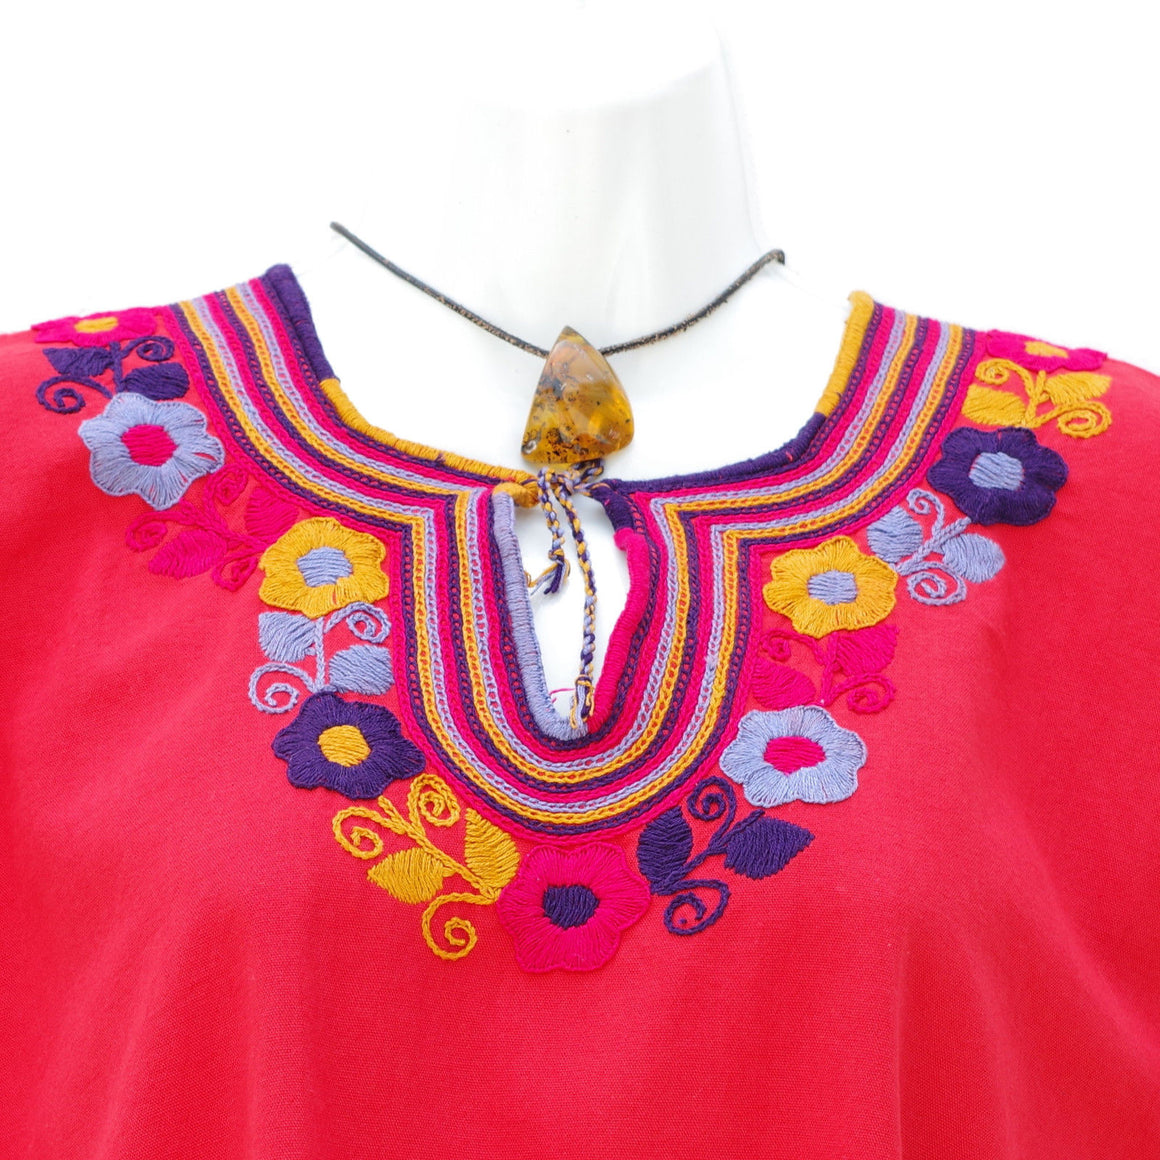 Embroidered Red Mexican Huipil Blouse Tunic Top Peasant M/L/XL